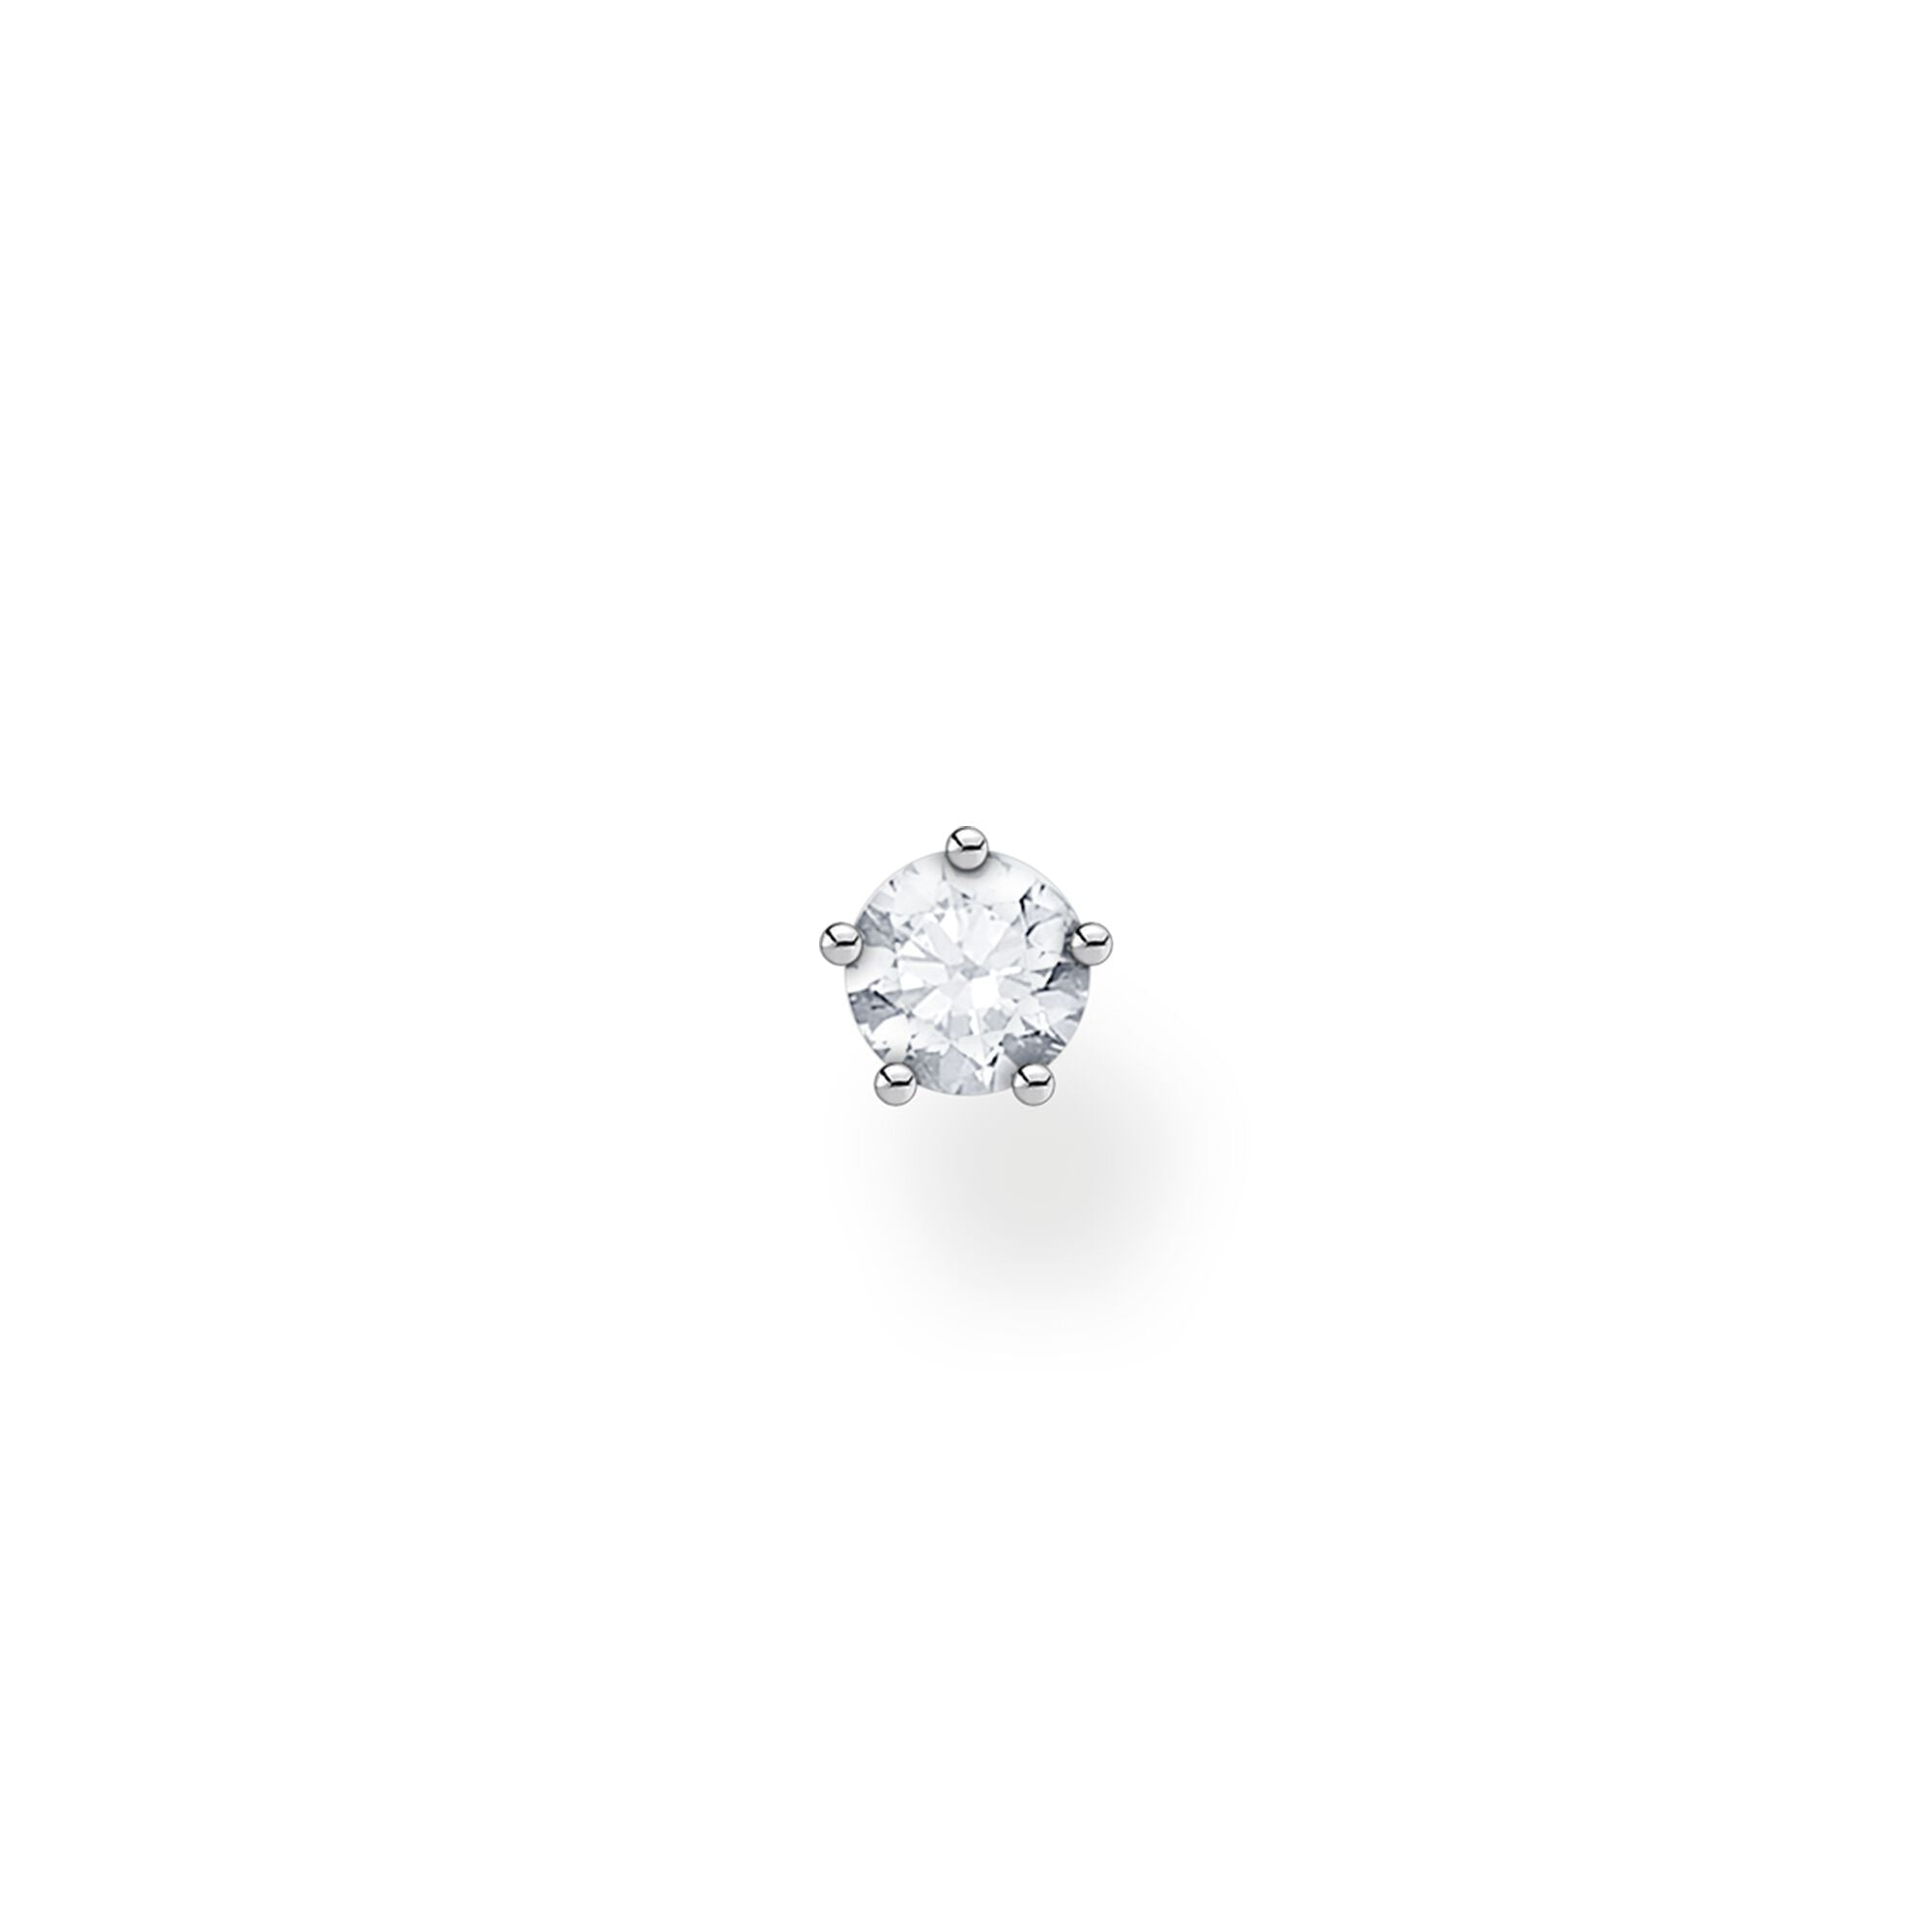 STERLING SILVER CHARMING COLLECTION CZ STUD EARRING SINGLE